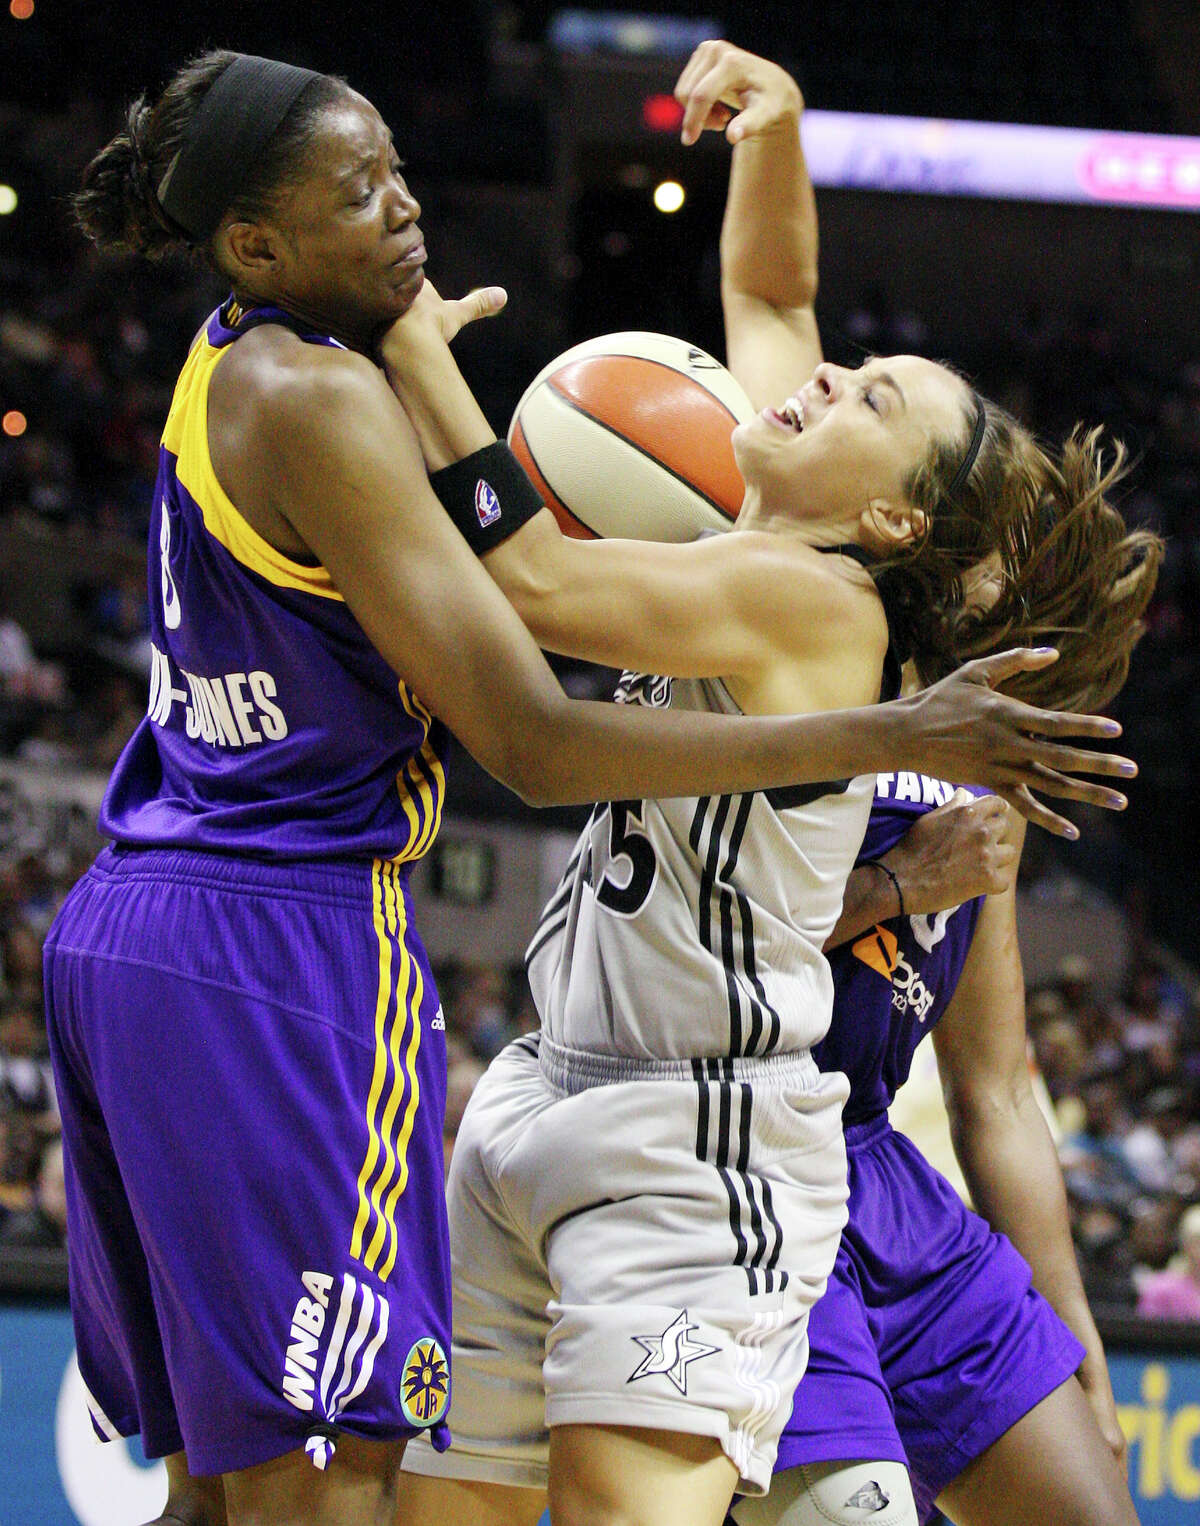 The Silver Stars' Becky Hammon looks for room between Sparks' Delisha Milton-Jones (left) and Sparks' Alana Beard (rear) during second half action Saturday, June 16, 2012 at the AT&T Center. The Stars won 98-85 in overtime.